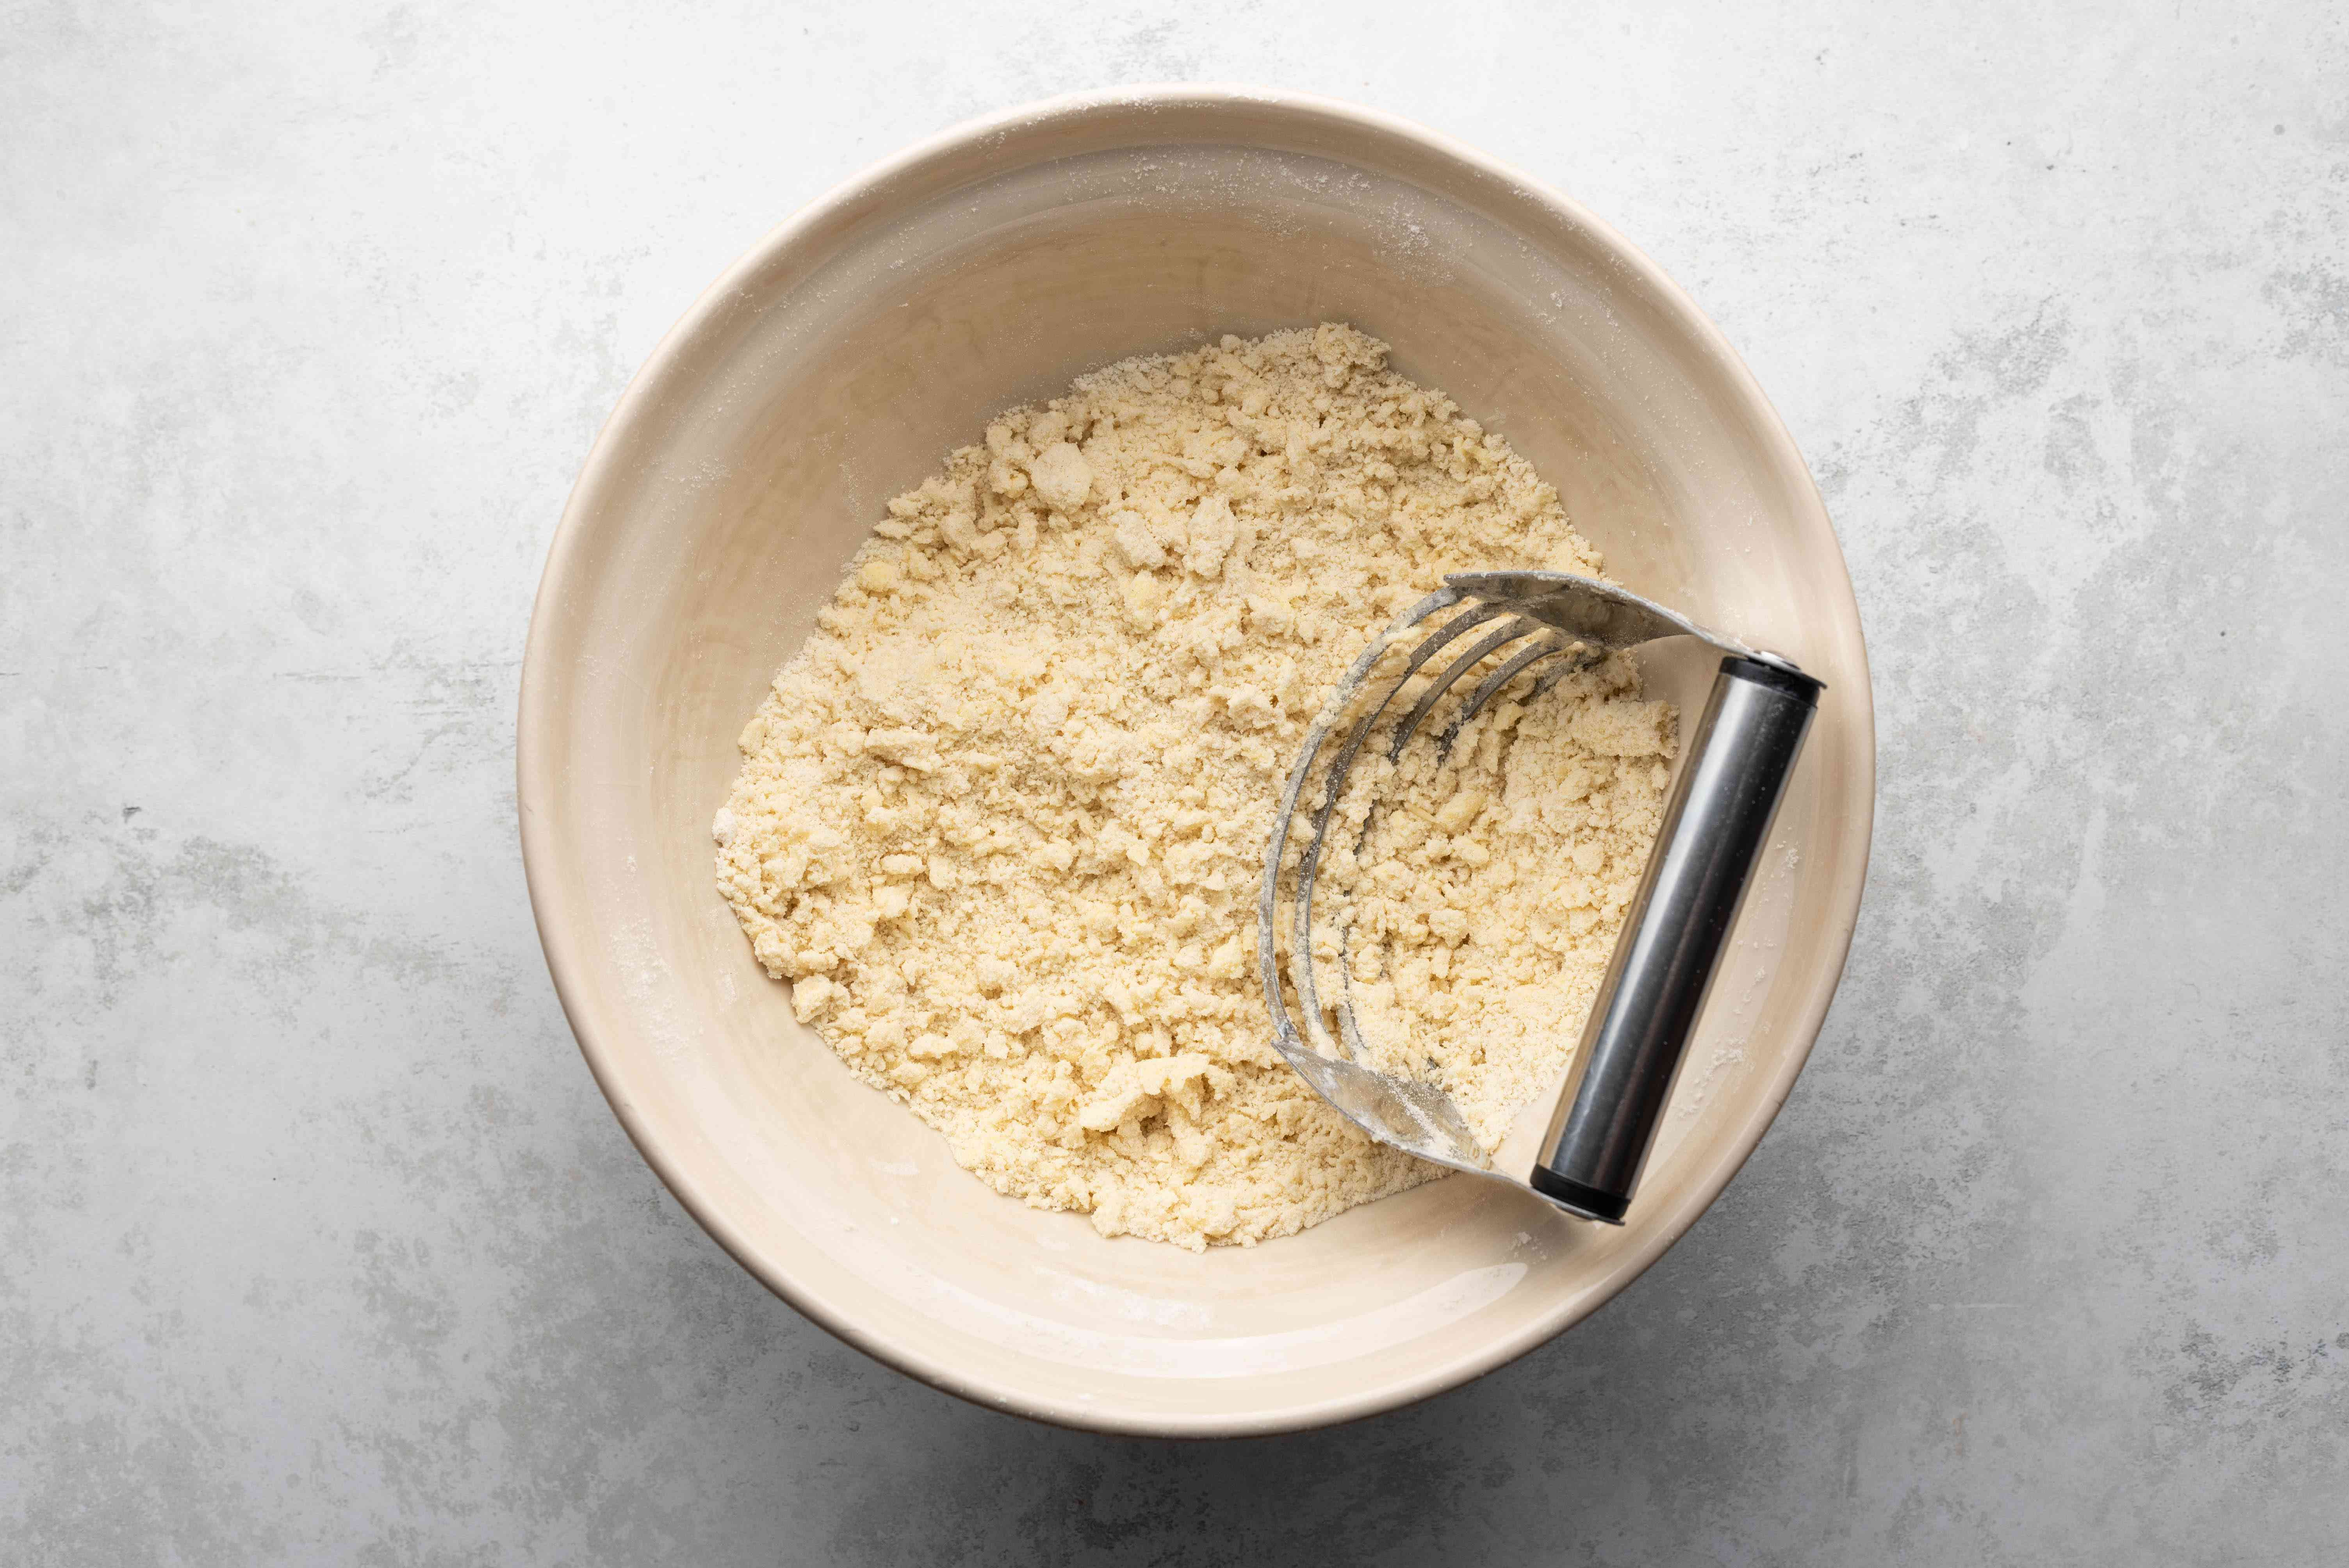 butter combined with the flour mixture